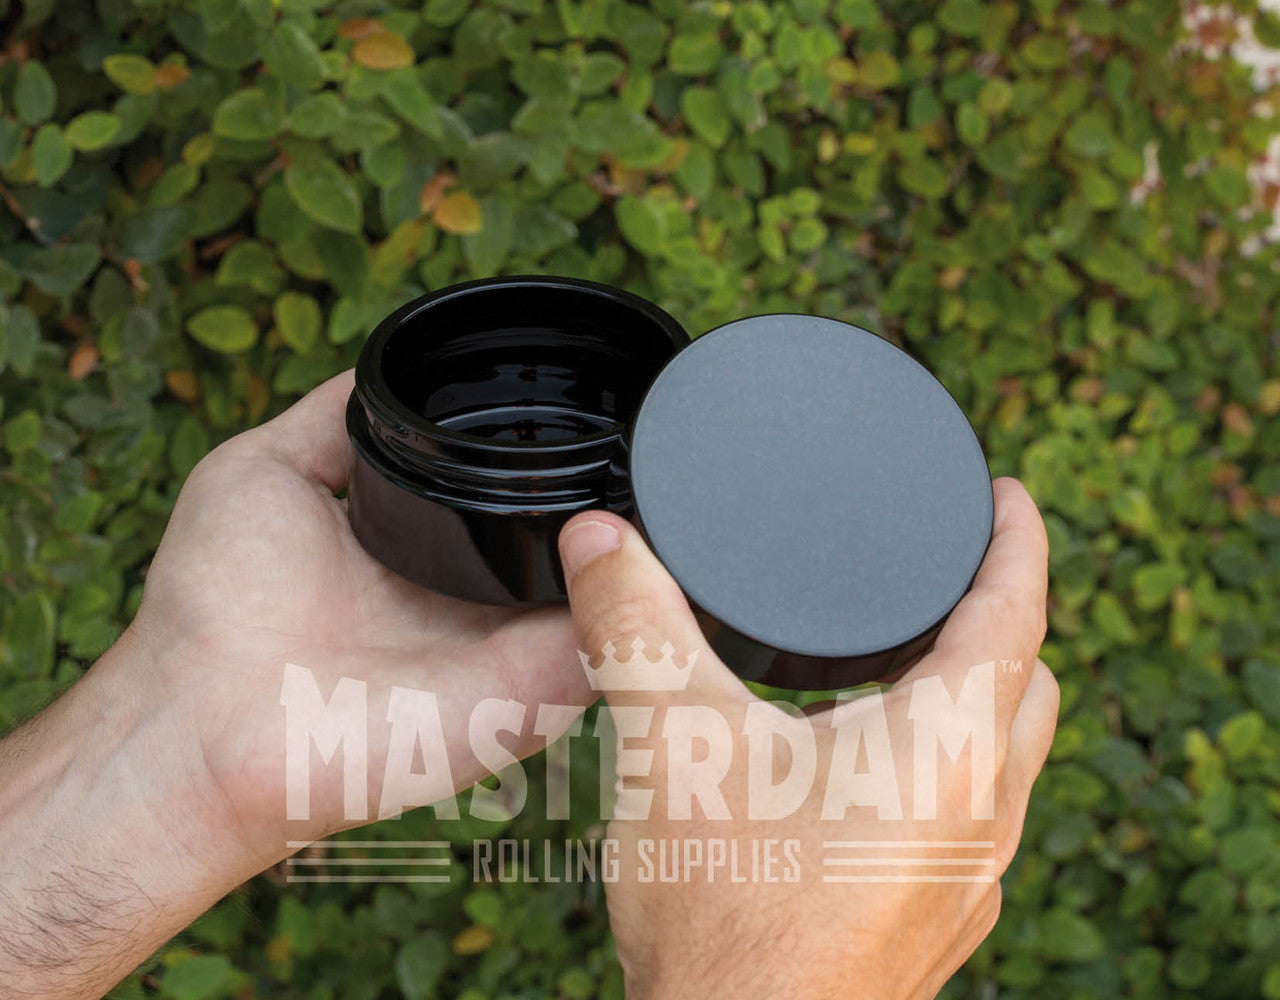 Masterdam Jars 100ml StashShield UV Glass Jar